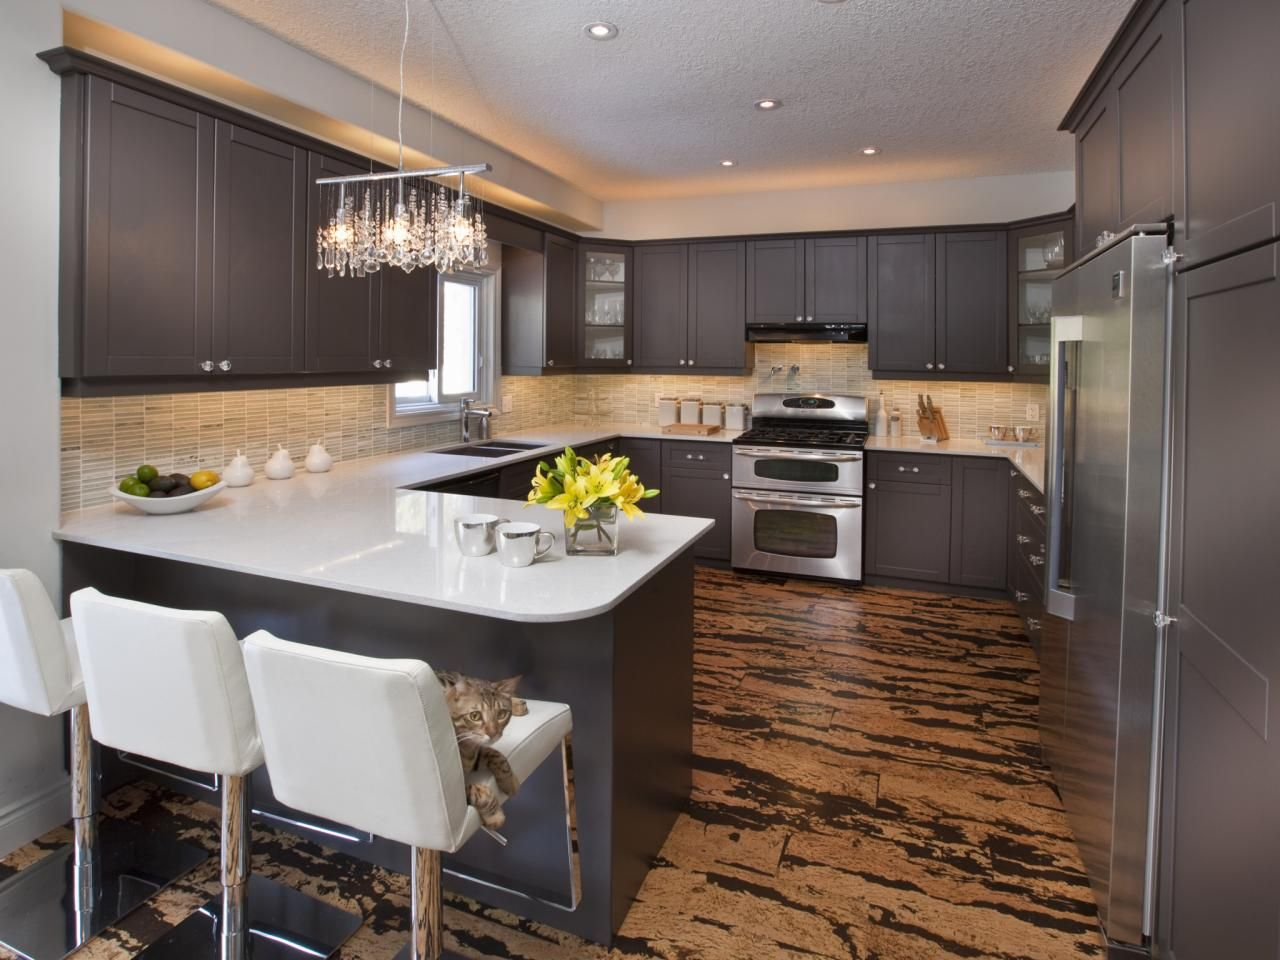 Cork Flooring Has Some Awesome Acoustic Insulating Properties And